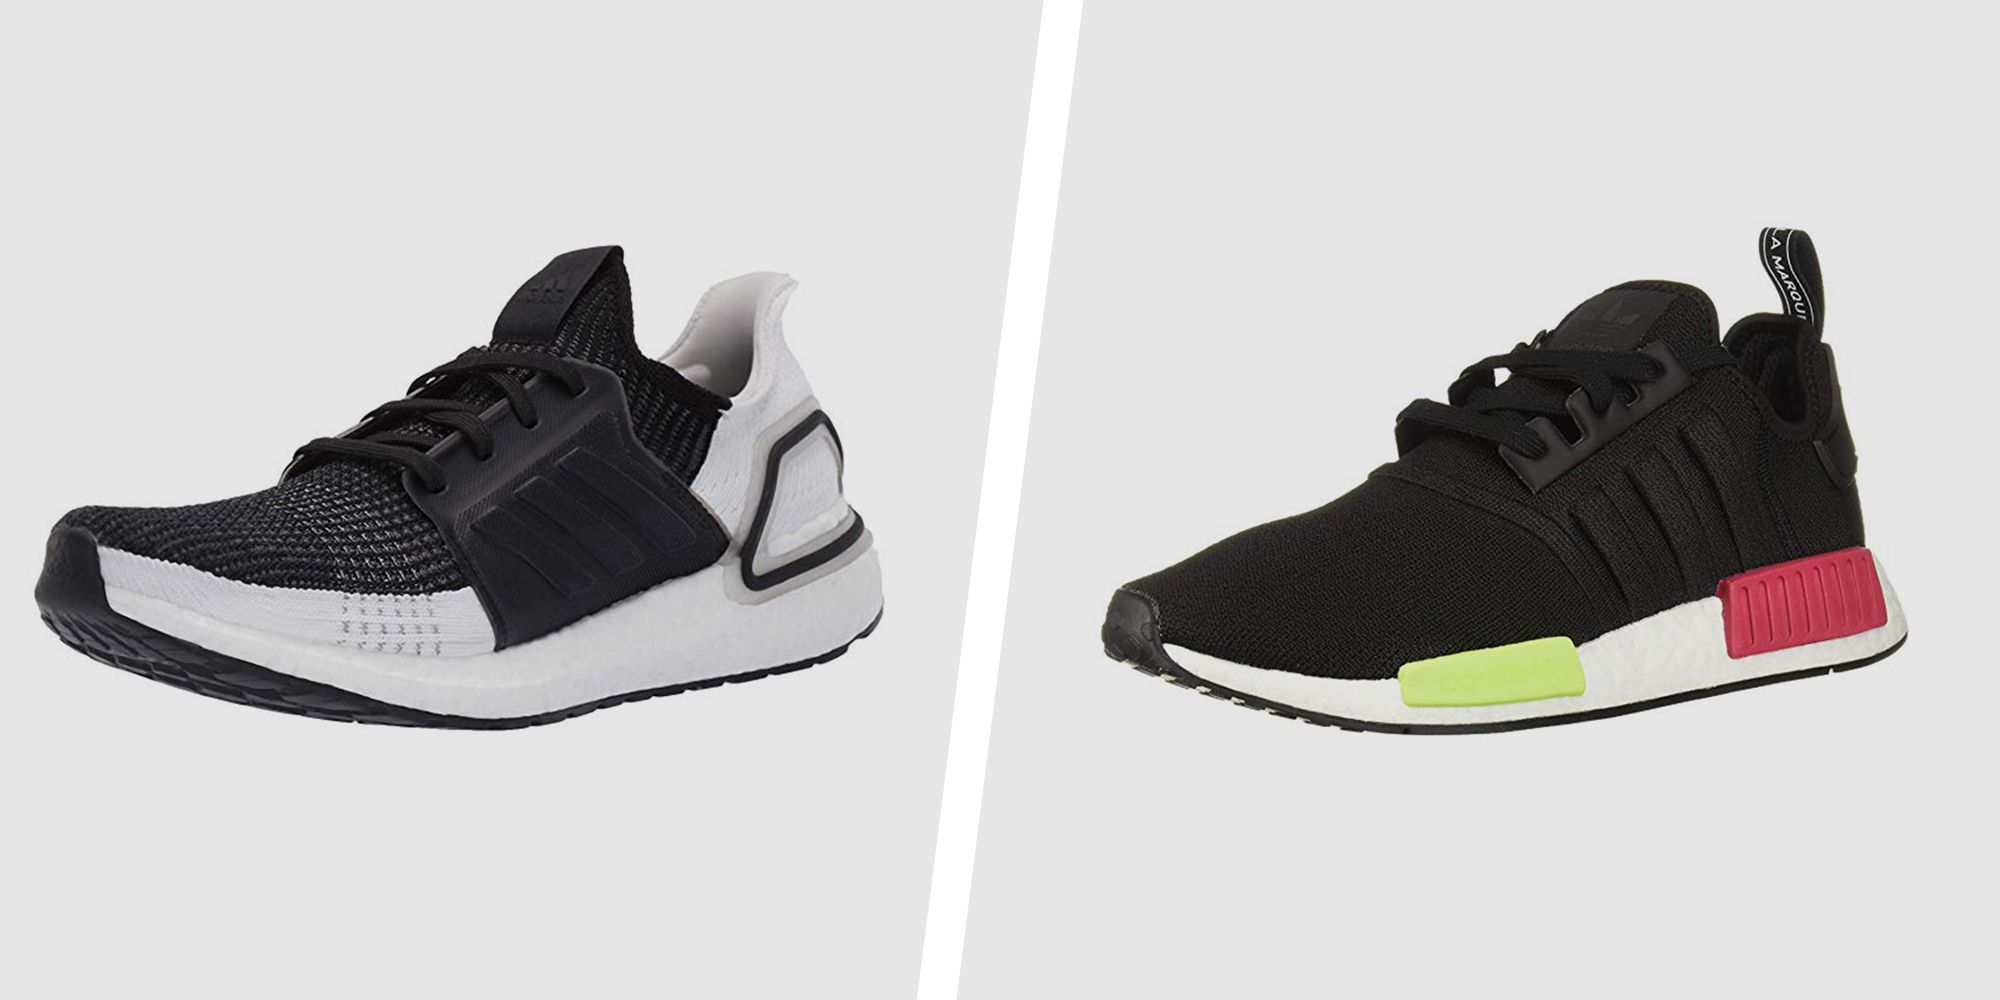 8 Adidas Sneaker Deals You Can Secretly Score on Amazon Right Now